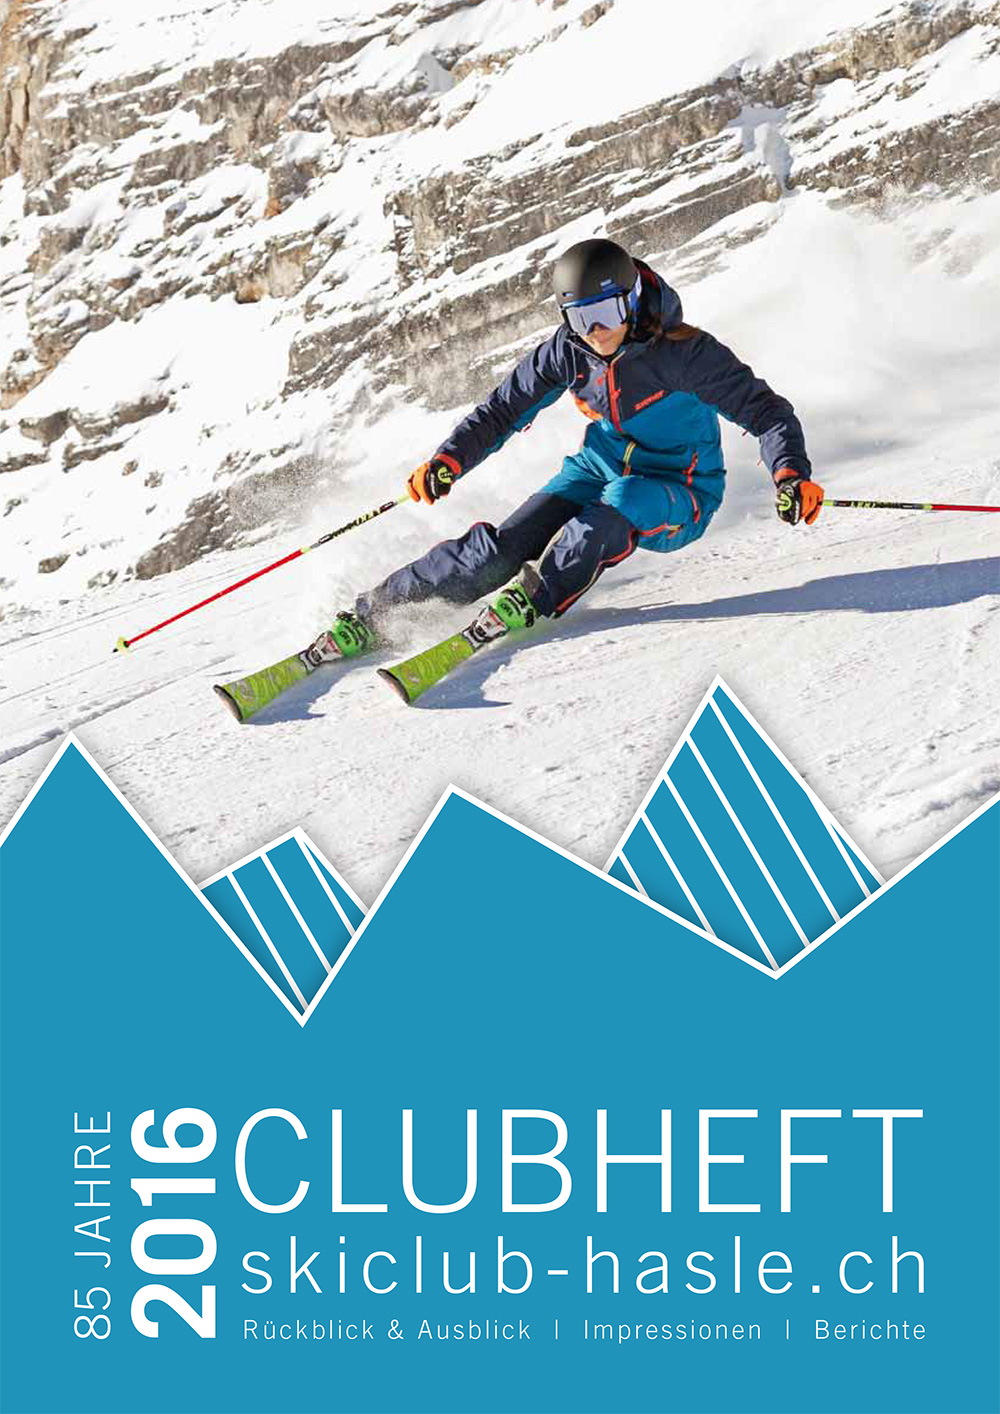 clubheft_2016_skiclub_hasle